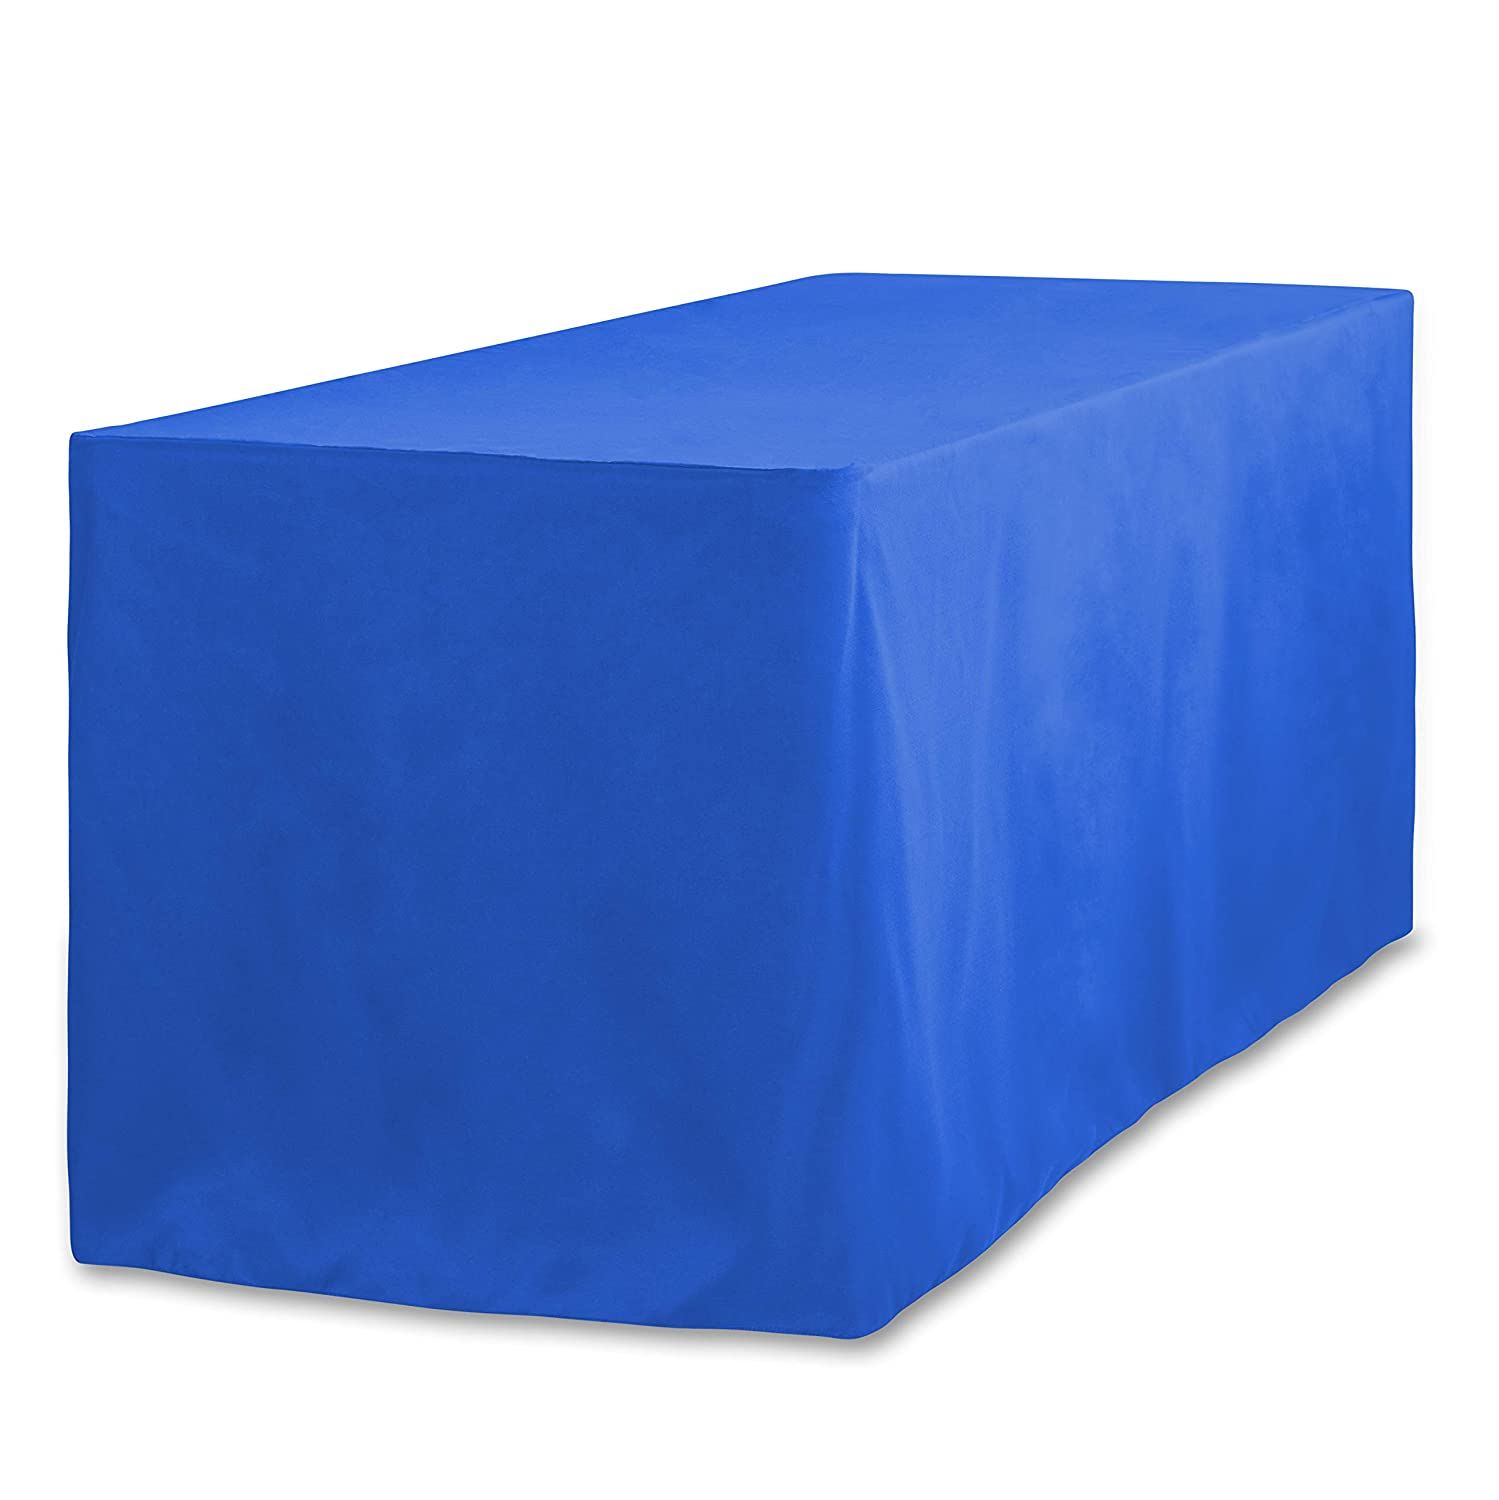 LinenTablecloth 4 ft Fitted Polyester Tablecloth Royal Blue 4FTTD-010173